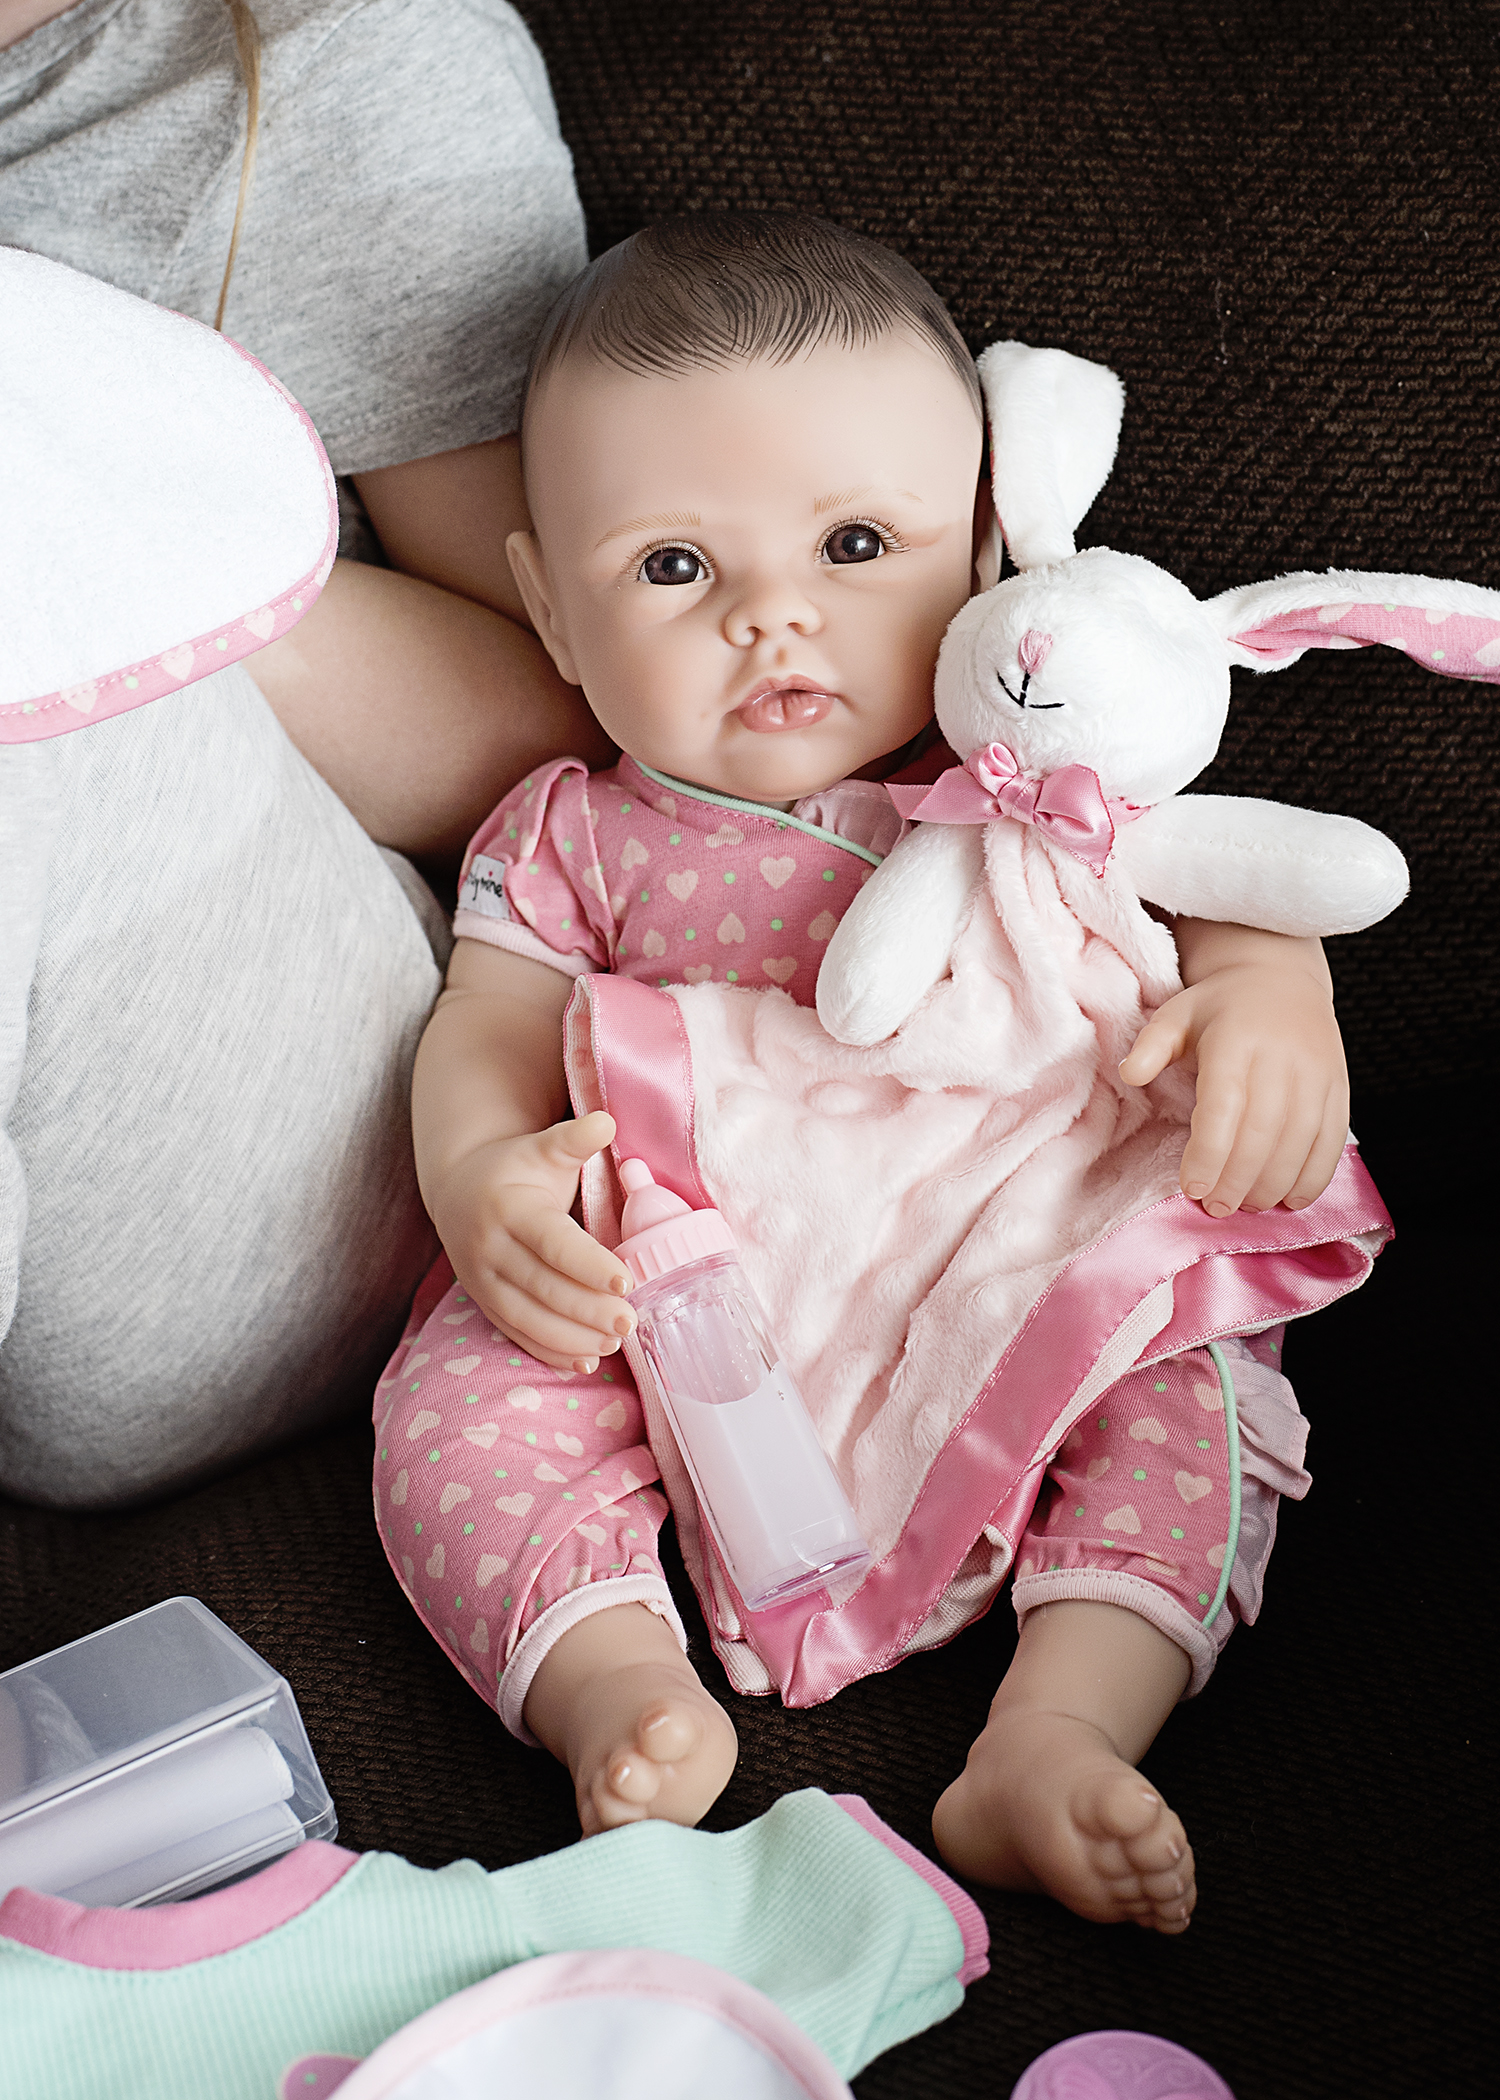 Lifelike Baby Dolls for Little Girls - Ashton Drake So Truly Mine